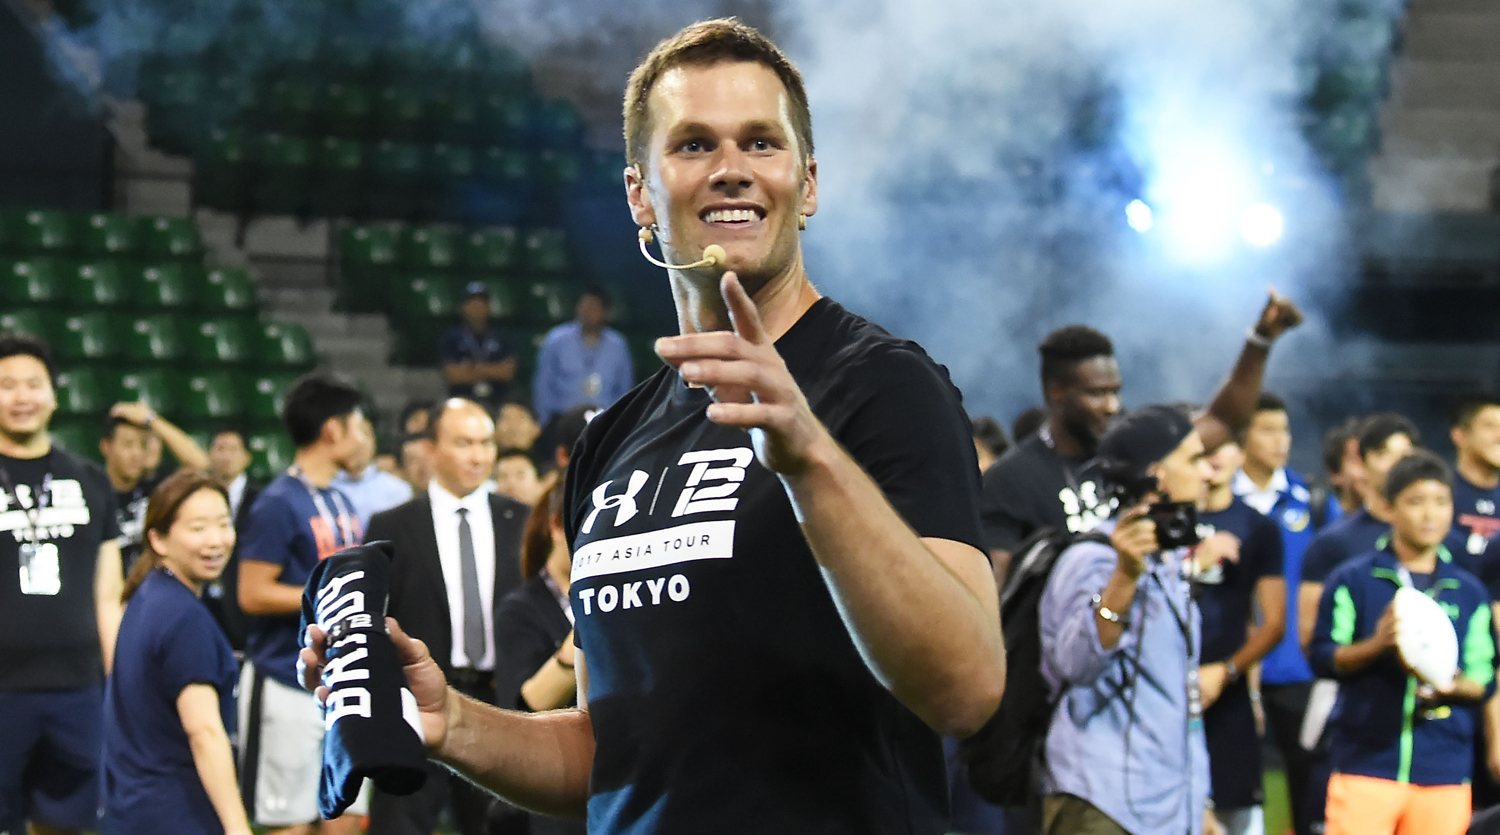 Watch: Tom Brady defeats little girl in throwing contest in Japan